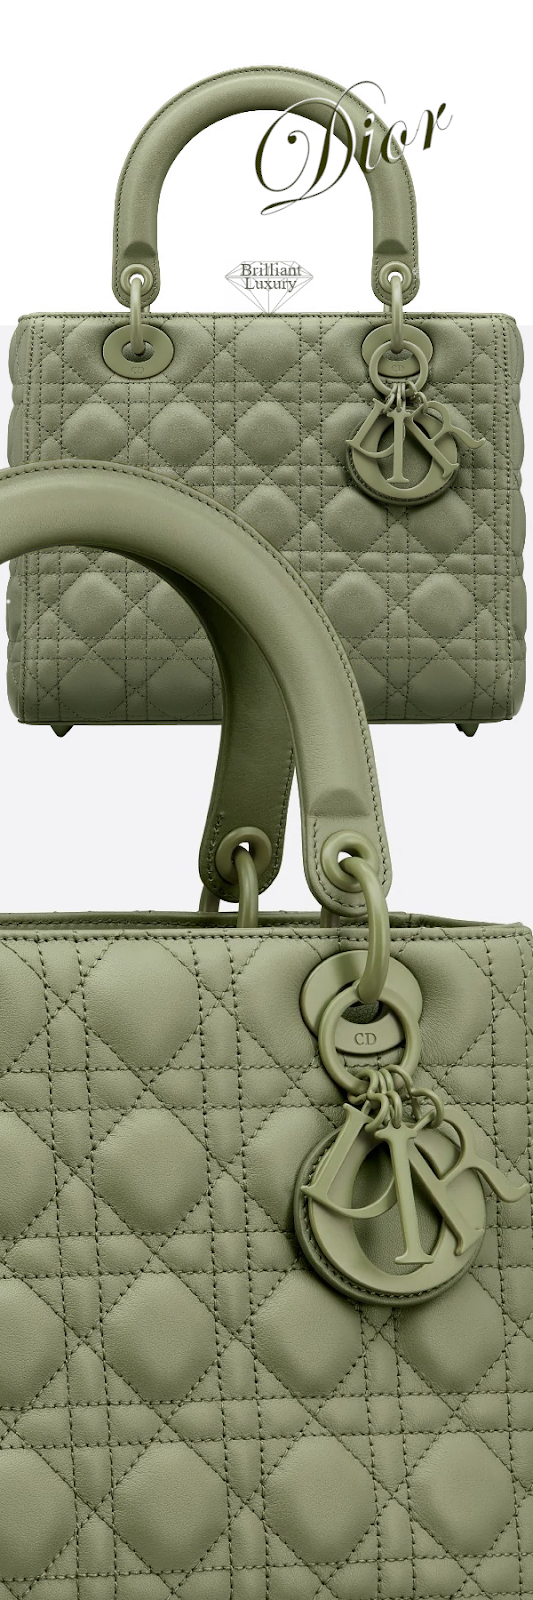 Dior Lady Dior Dusty Jade Ultramatte Calfskin Bag #brilliantluxury